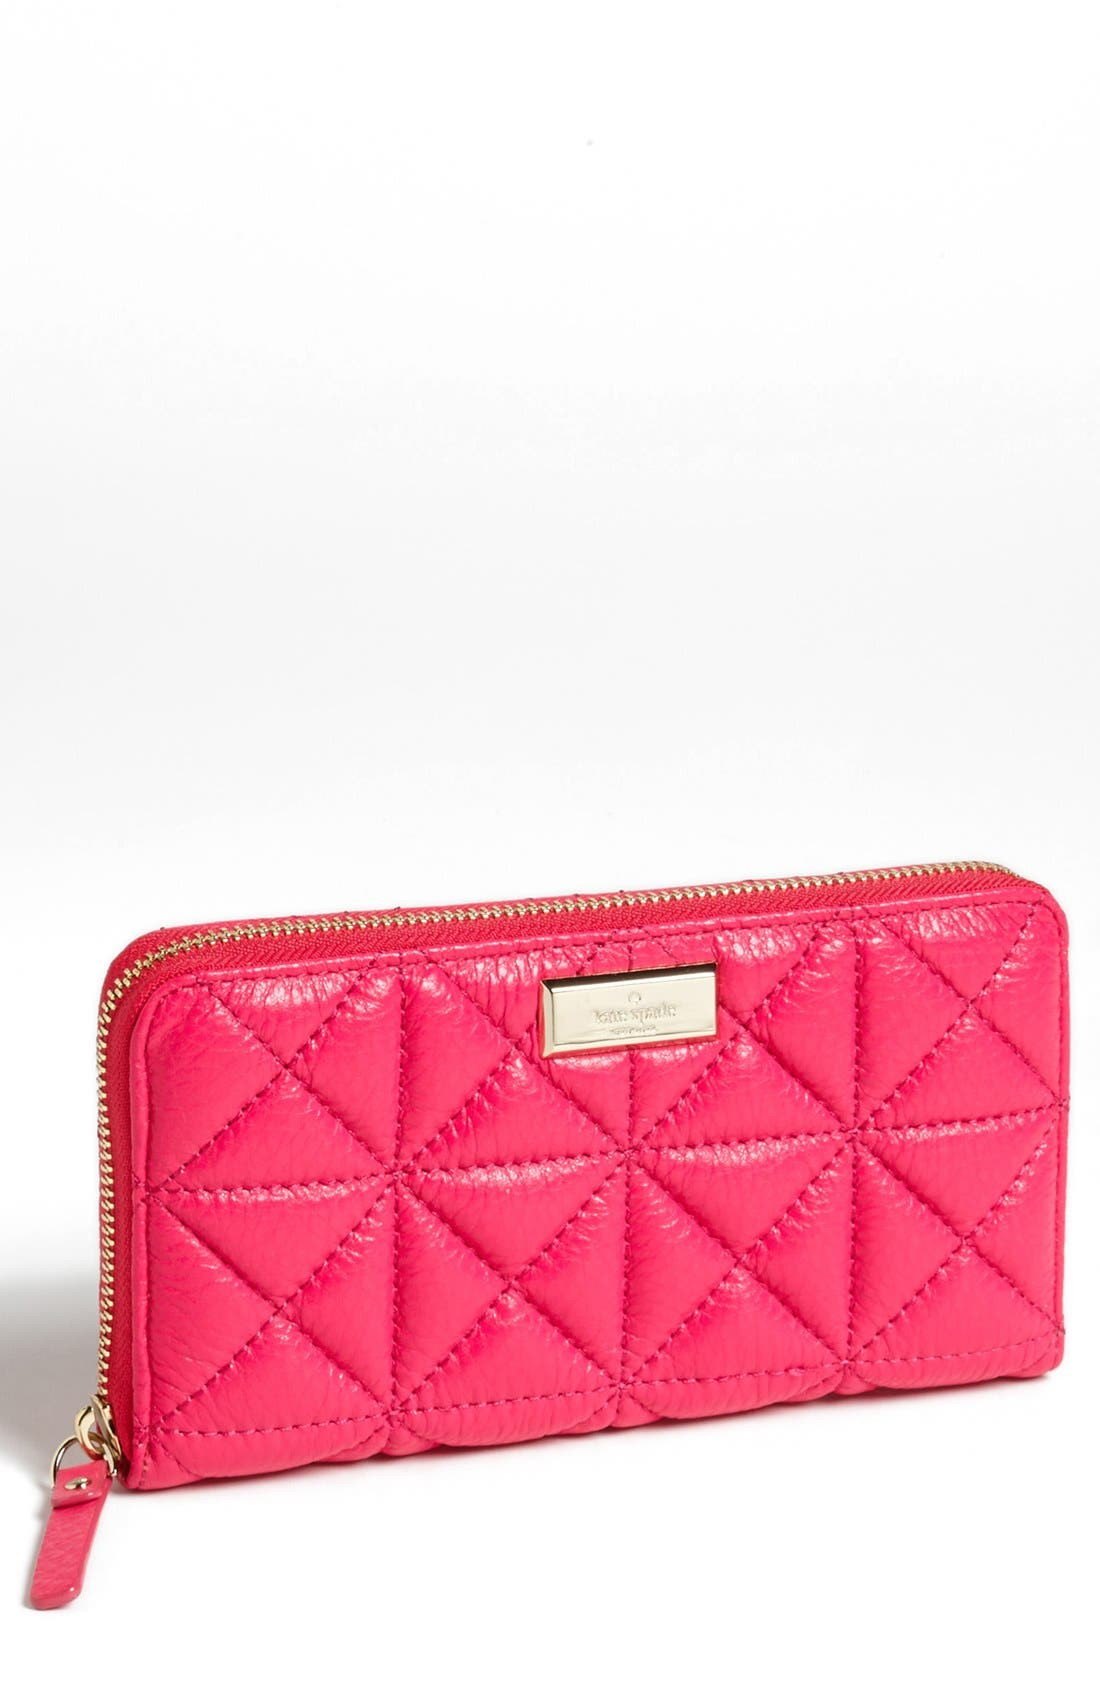 Alternate Image 1 Selected - kate spade new york 'sedgwick place - lacey' zip around wallet